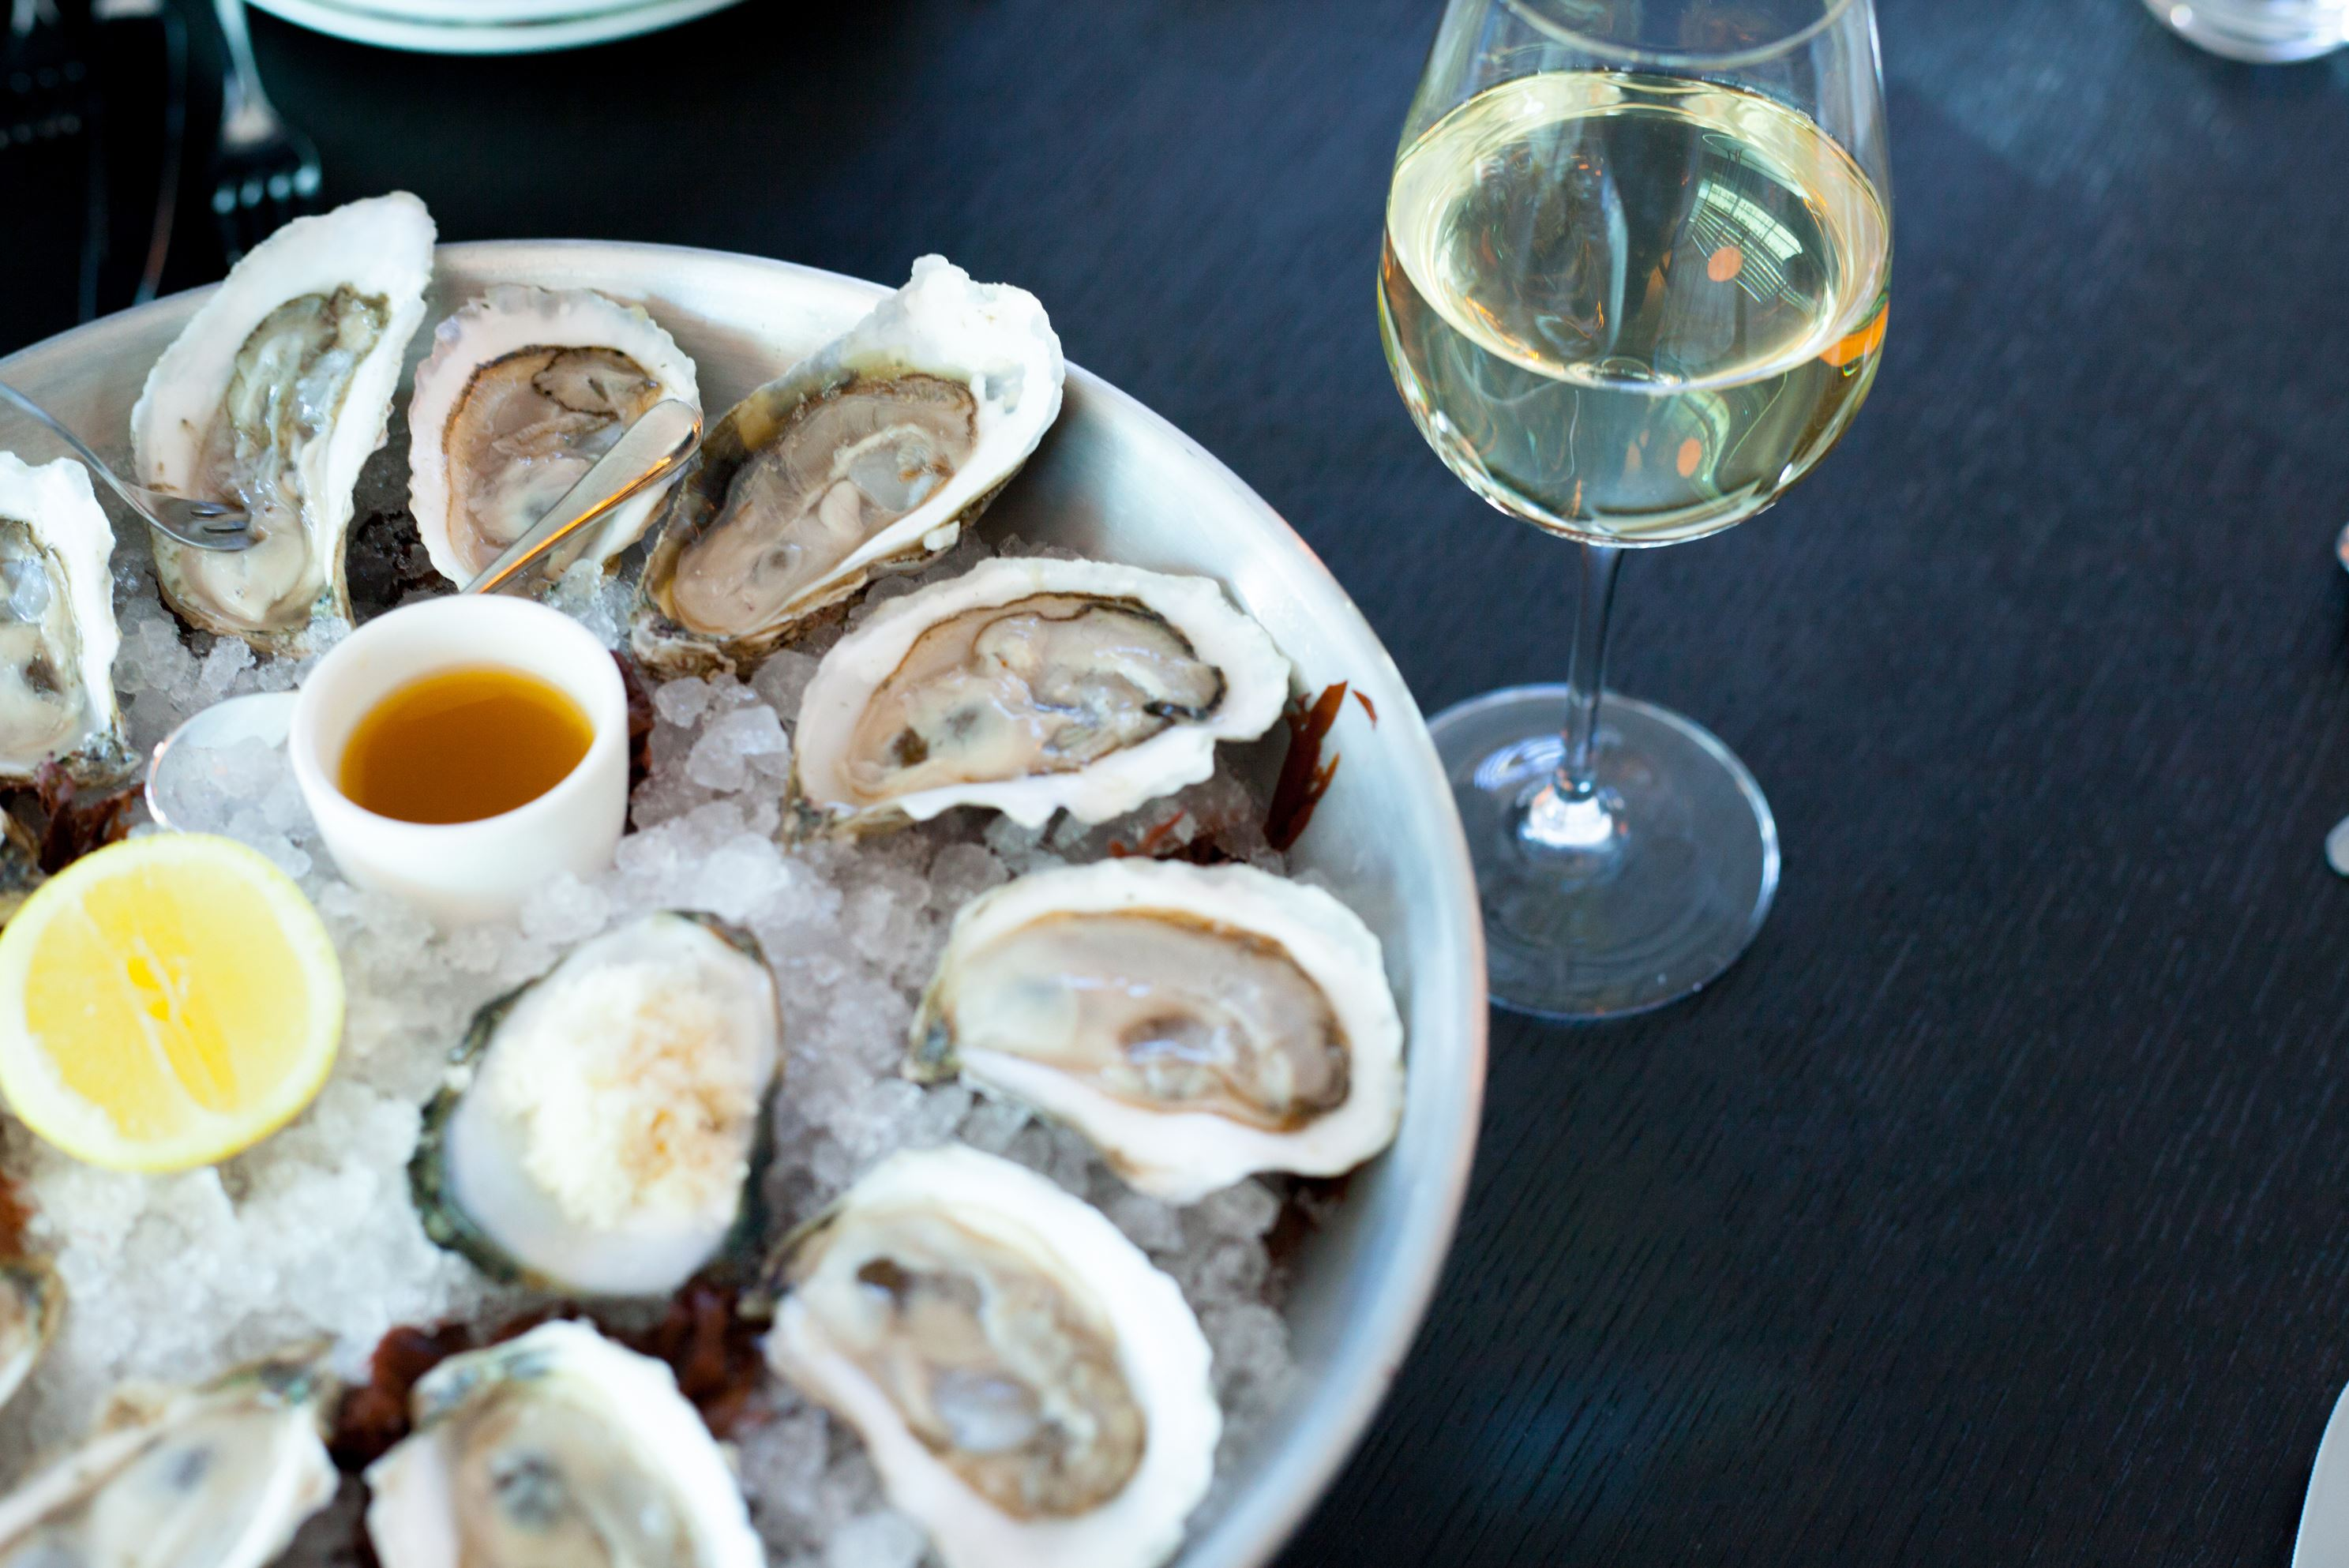 fl2_NYE_OYSTER Oysters from the raw bar will start off evening dining on New Year's Eve at Fl.2, the new restaurant concept at the Fairmont Pittsburgh hotel, Downtown.